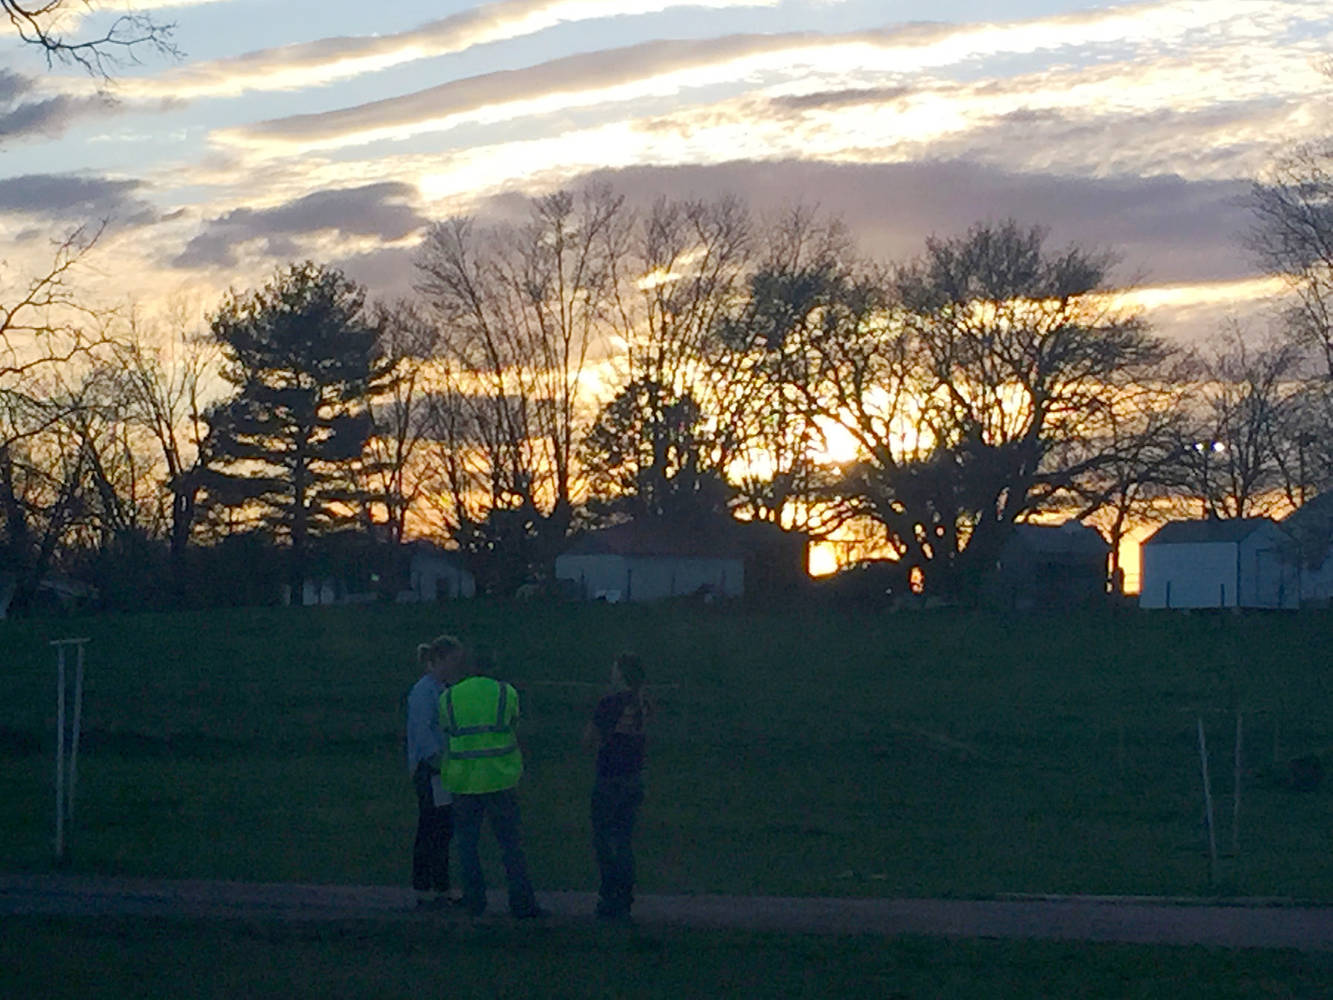 HLS students Lark Turner '18 and Ryan Cohen '17 outside on a field as the sun sets